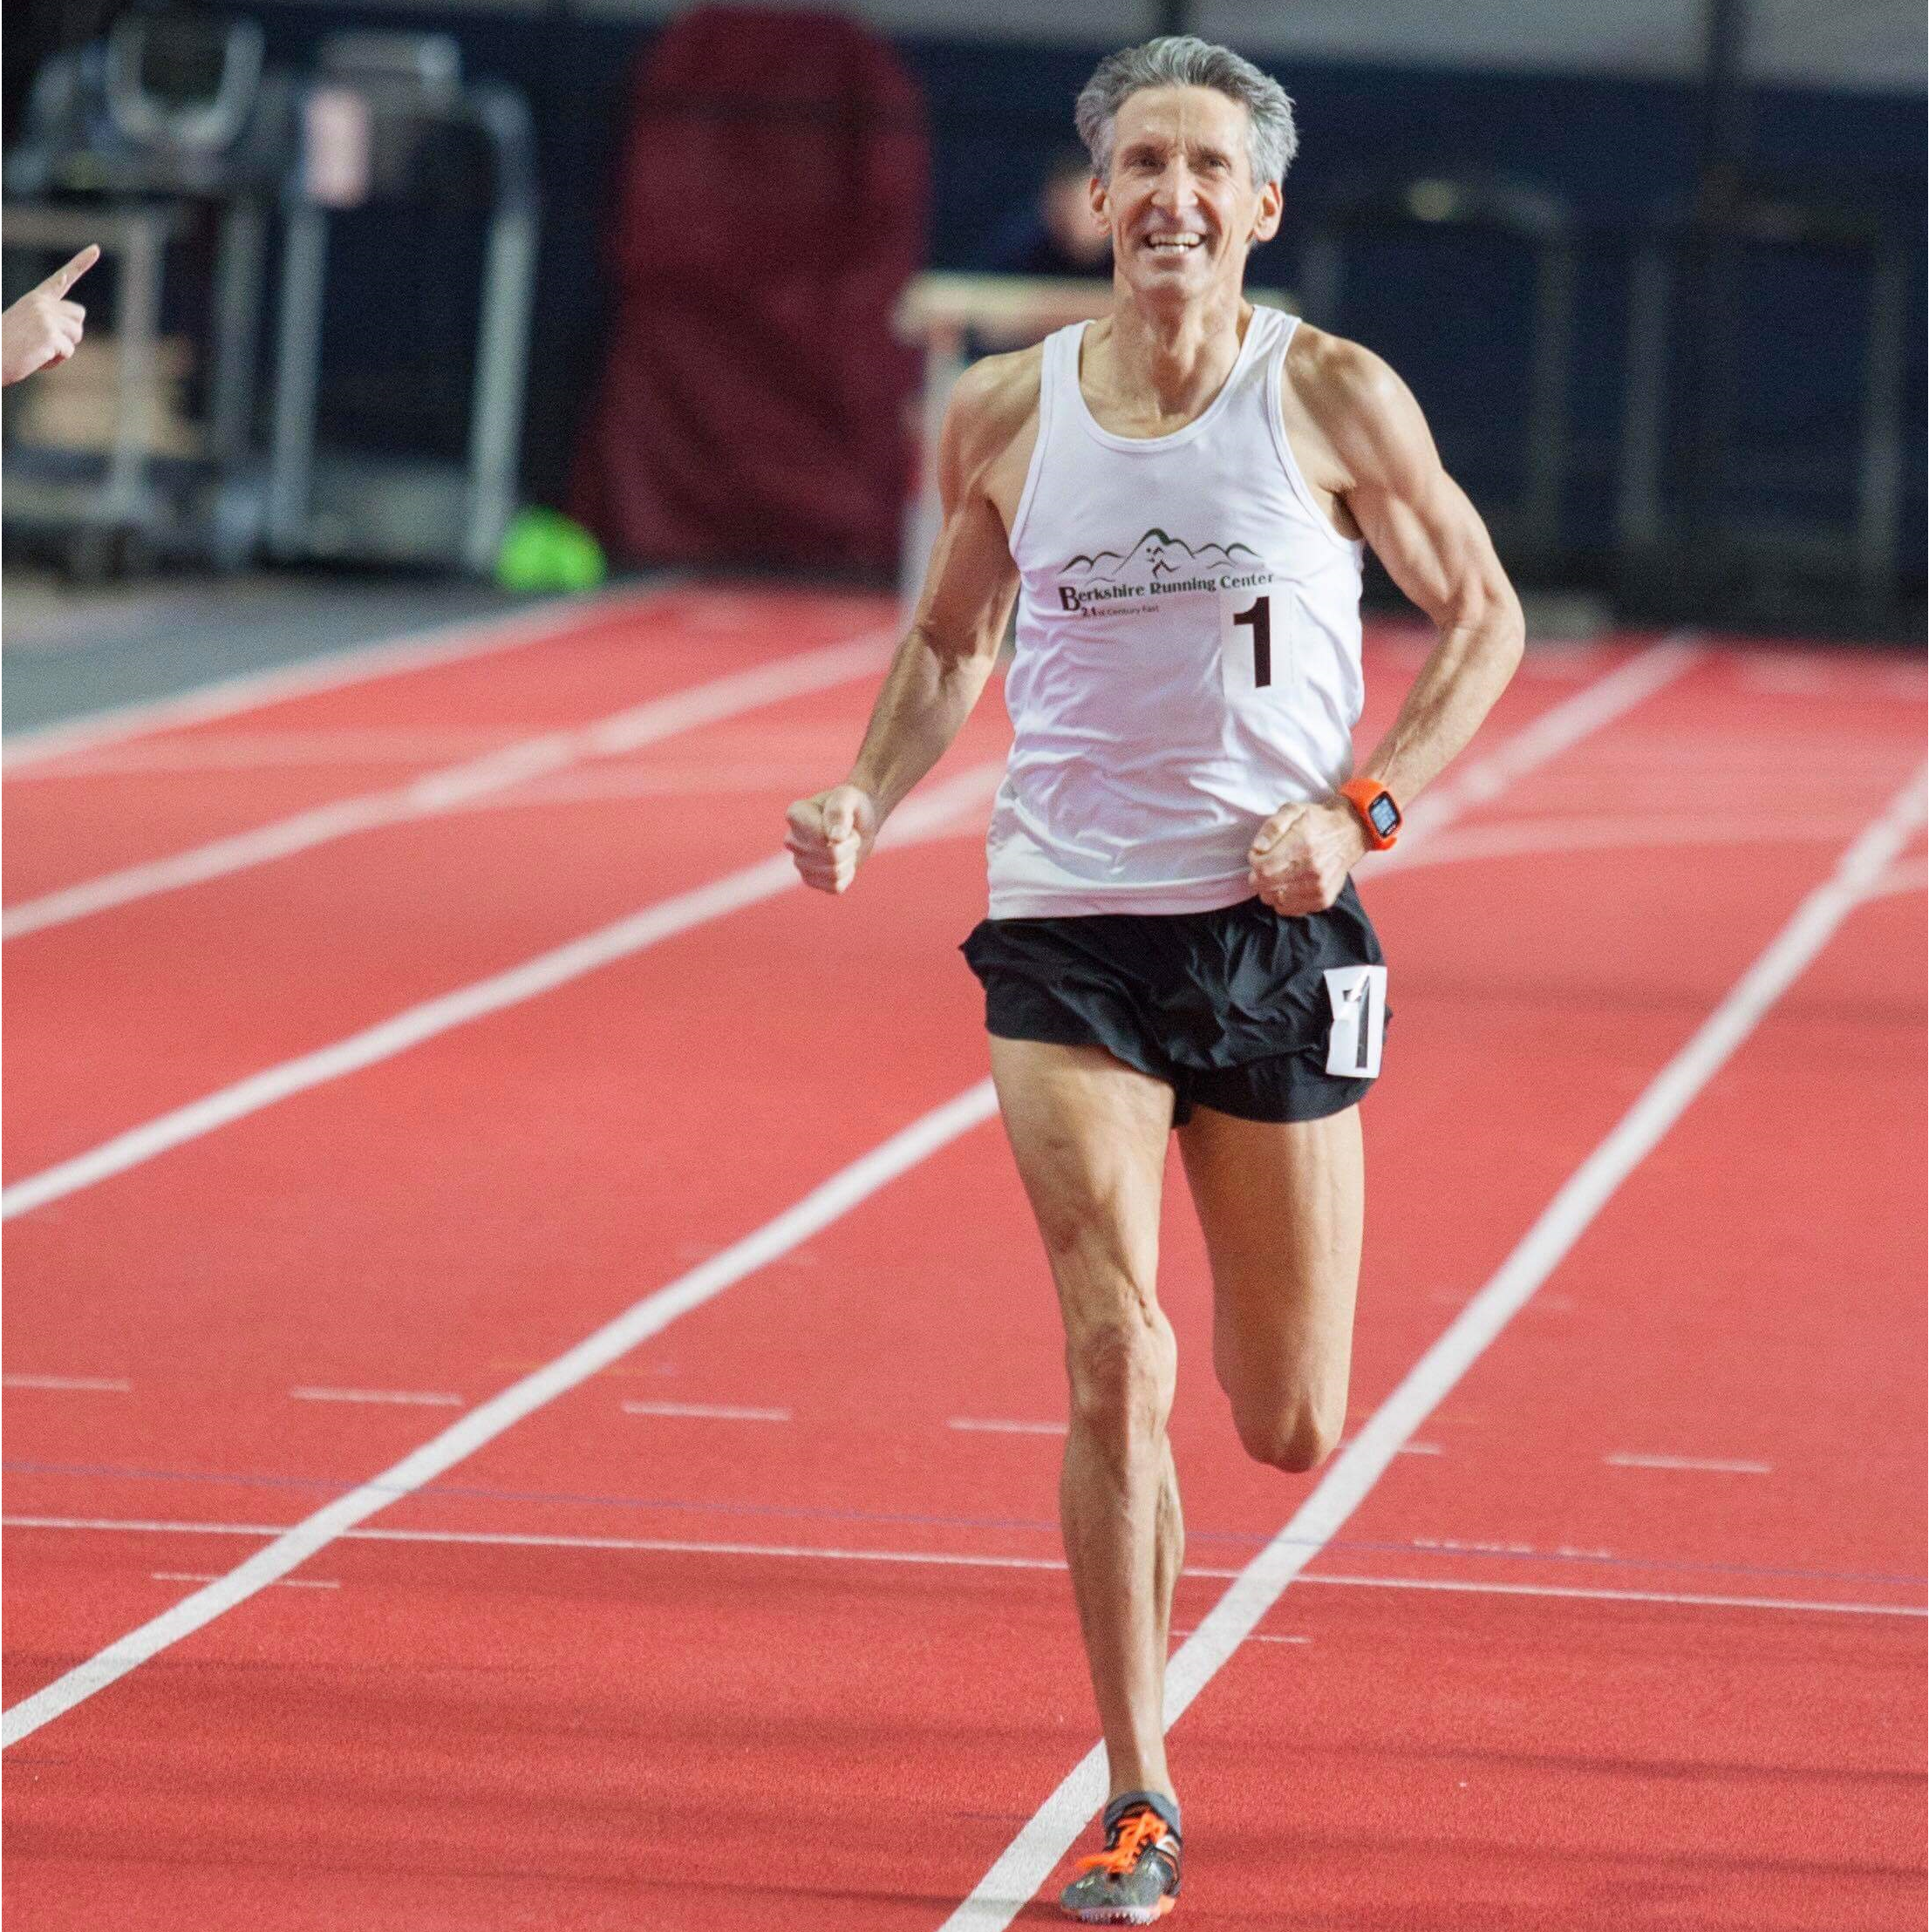 2018 Hartshrone Mile